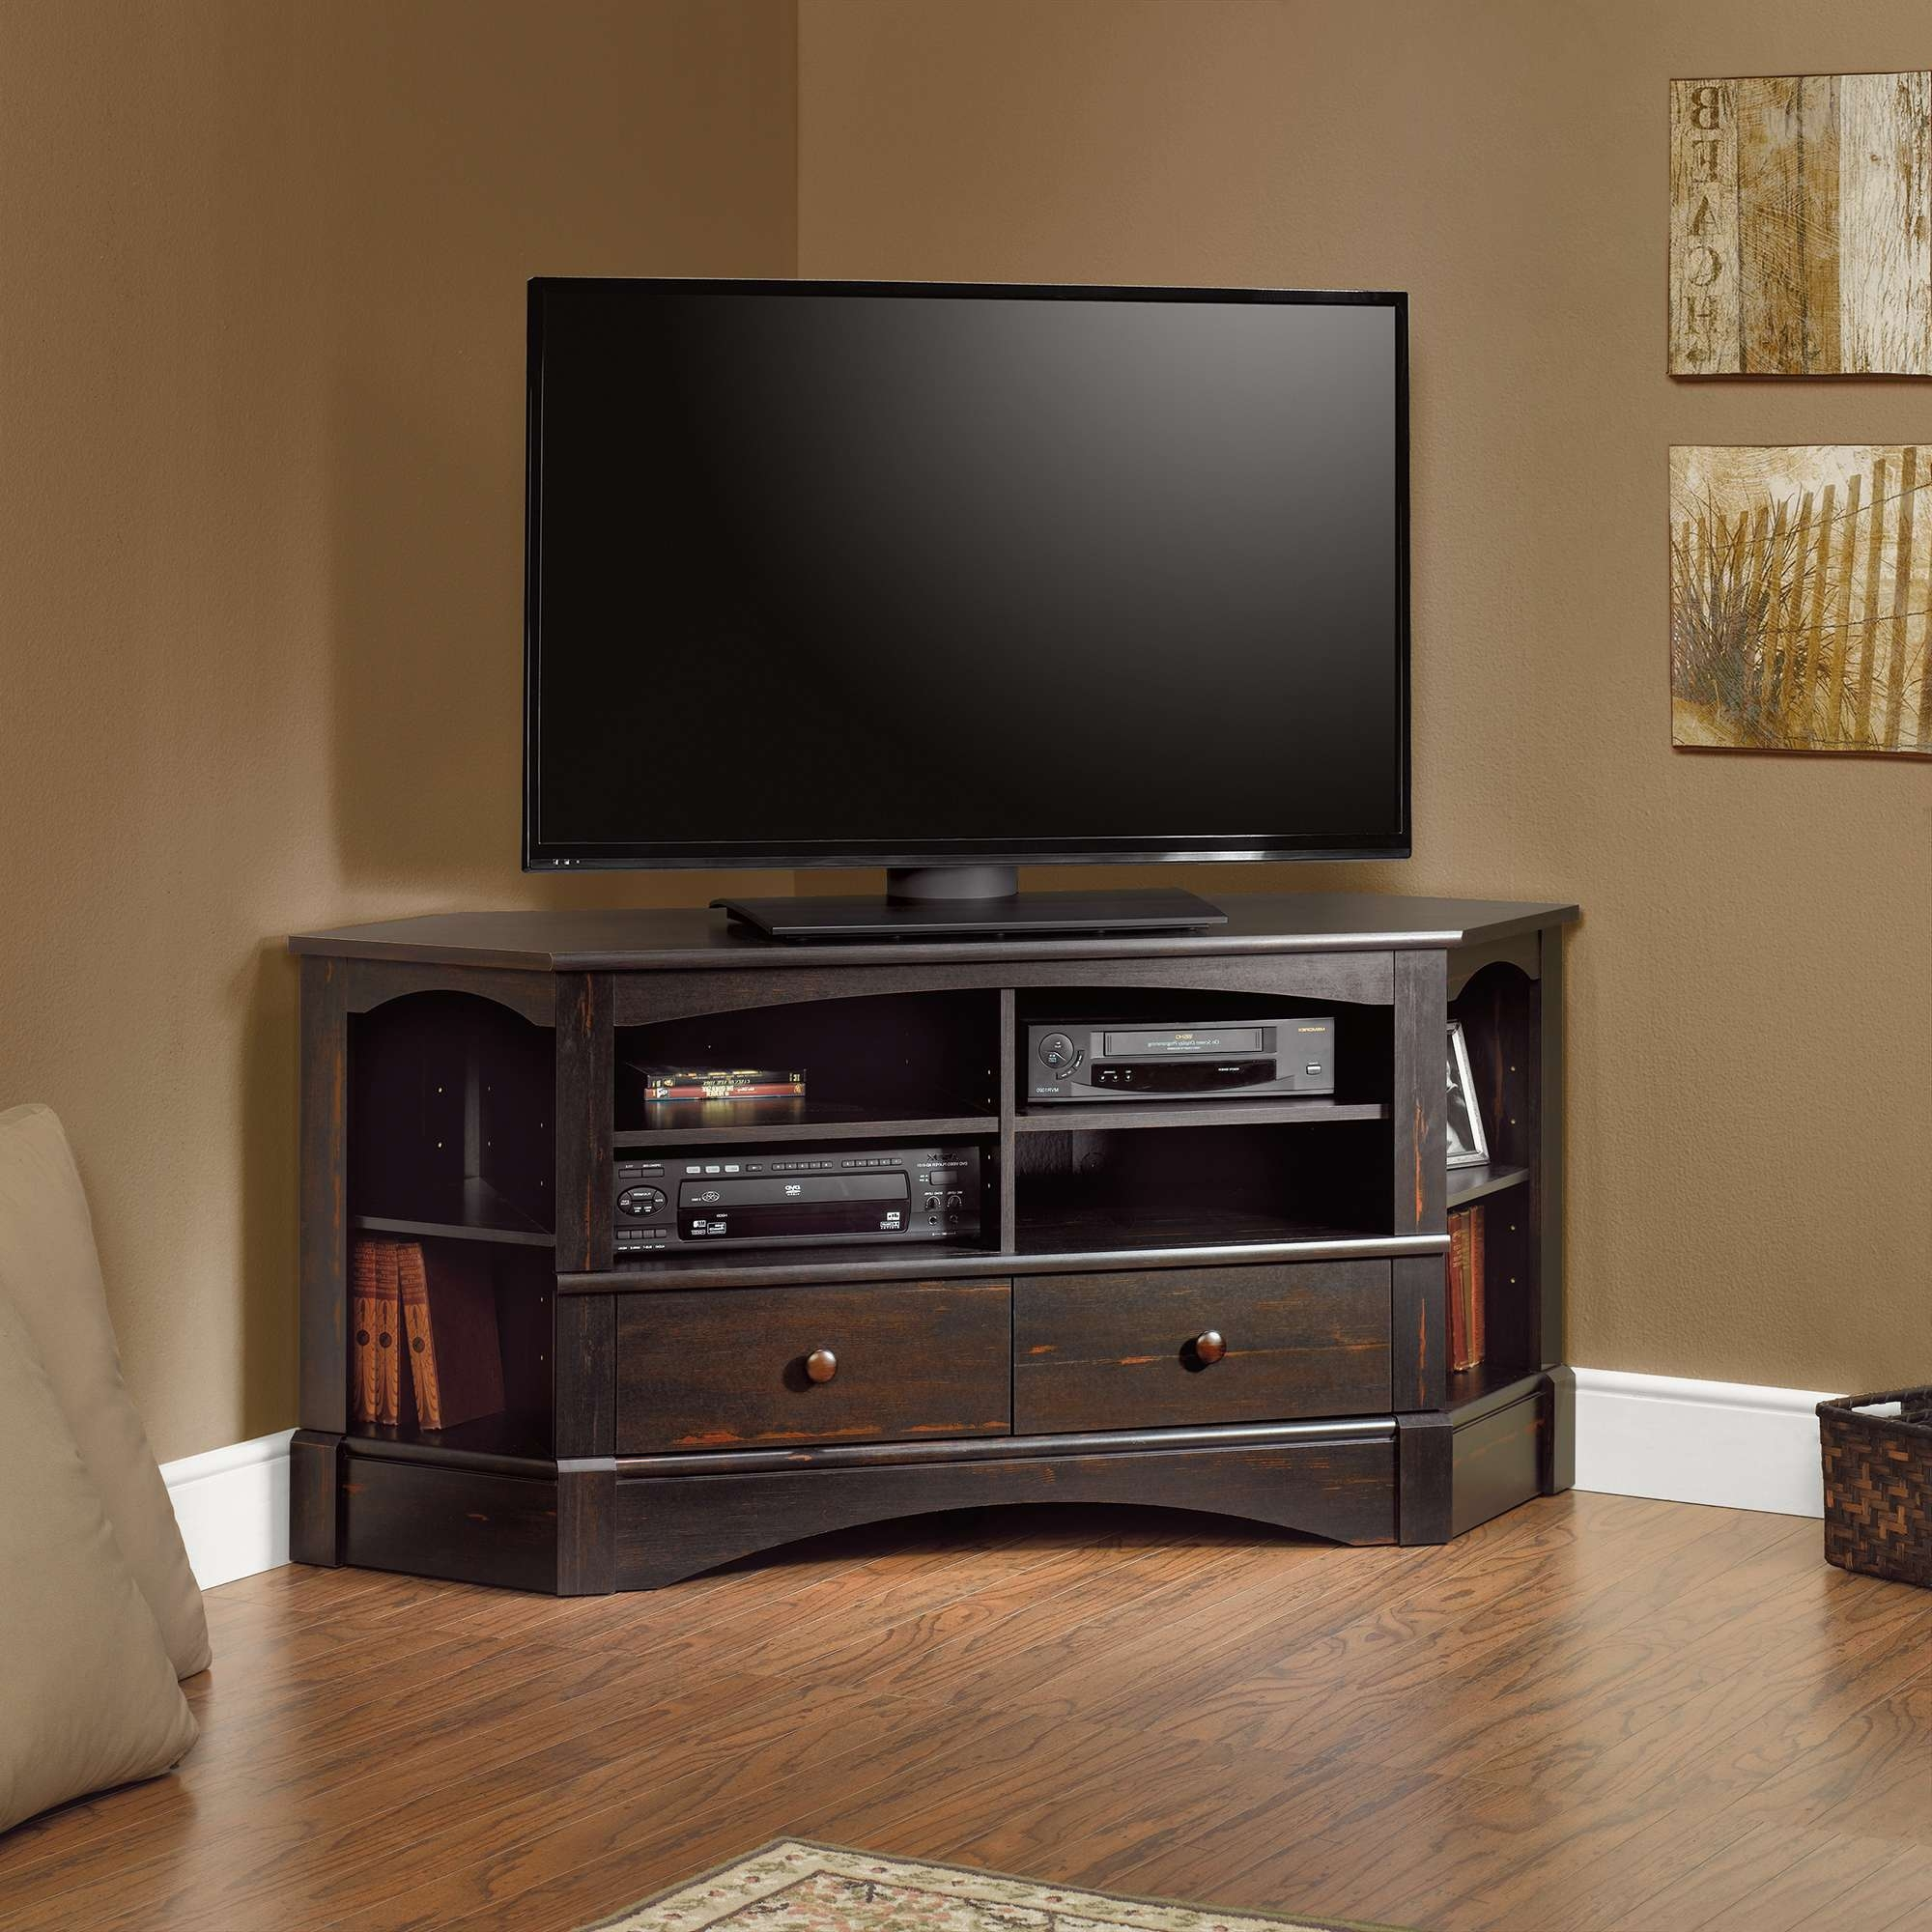 Fancy Matte Varnished Dark Oak Wood Tall Corner Tv Stand For Throughout Dark Tv Stands (View 4 of 15)